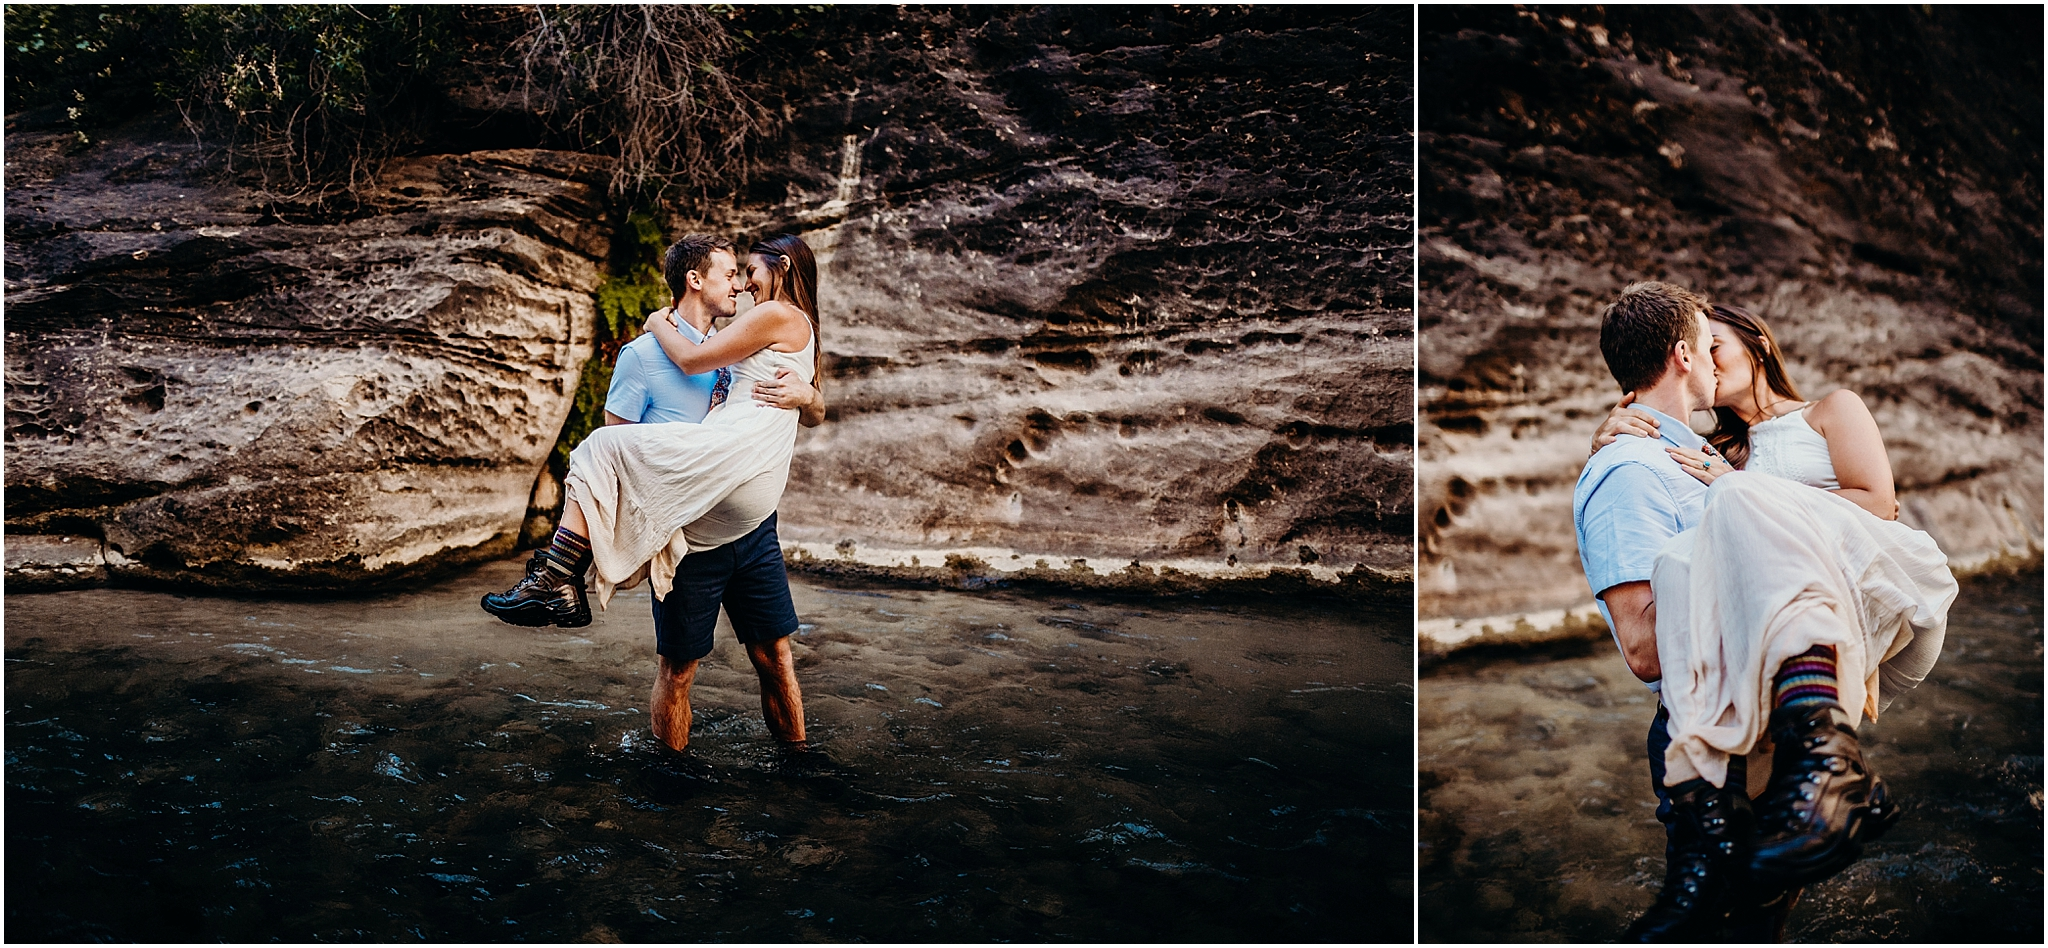 zion national park adventure engagement session zion portraits utah photographer arizona photographer 3.jpg